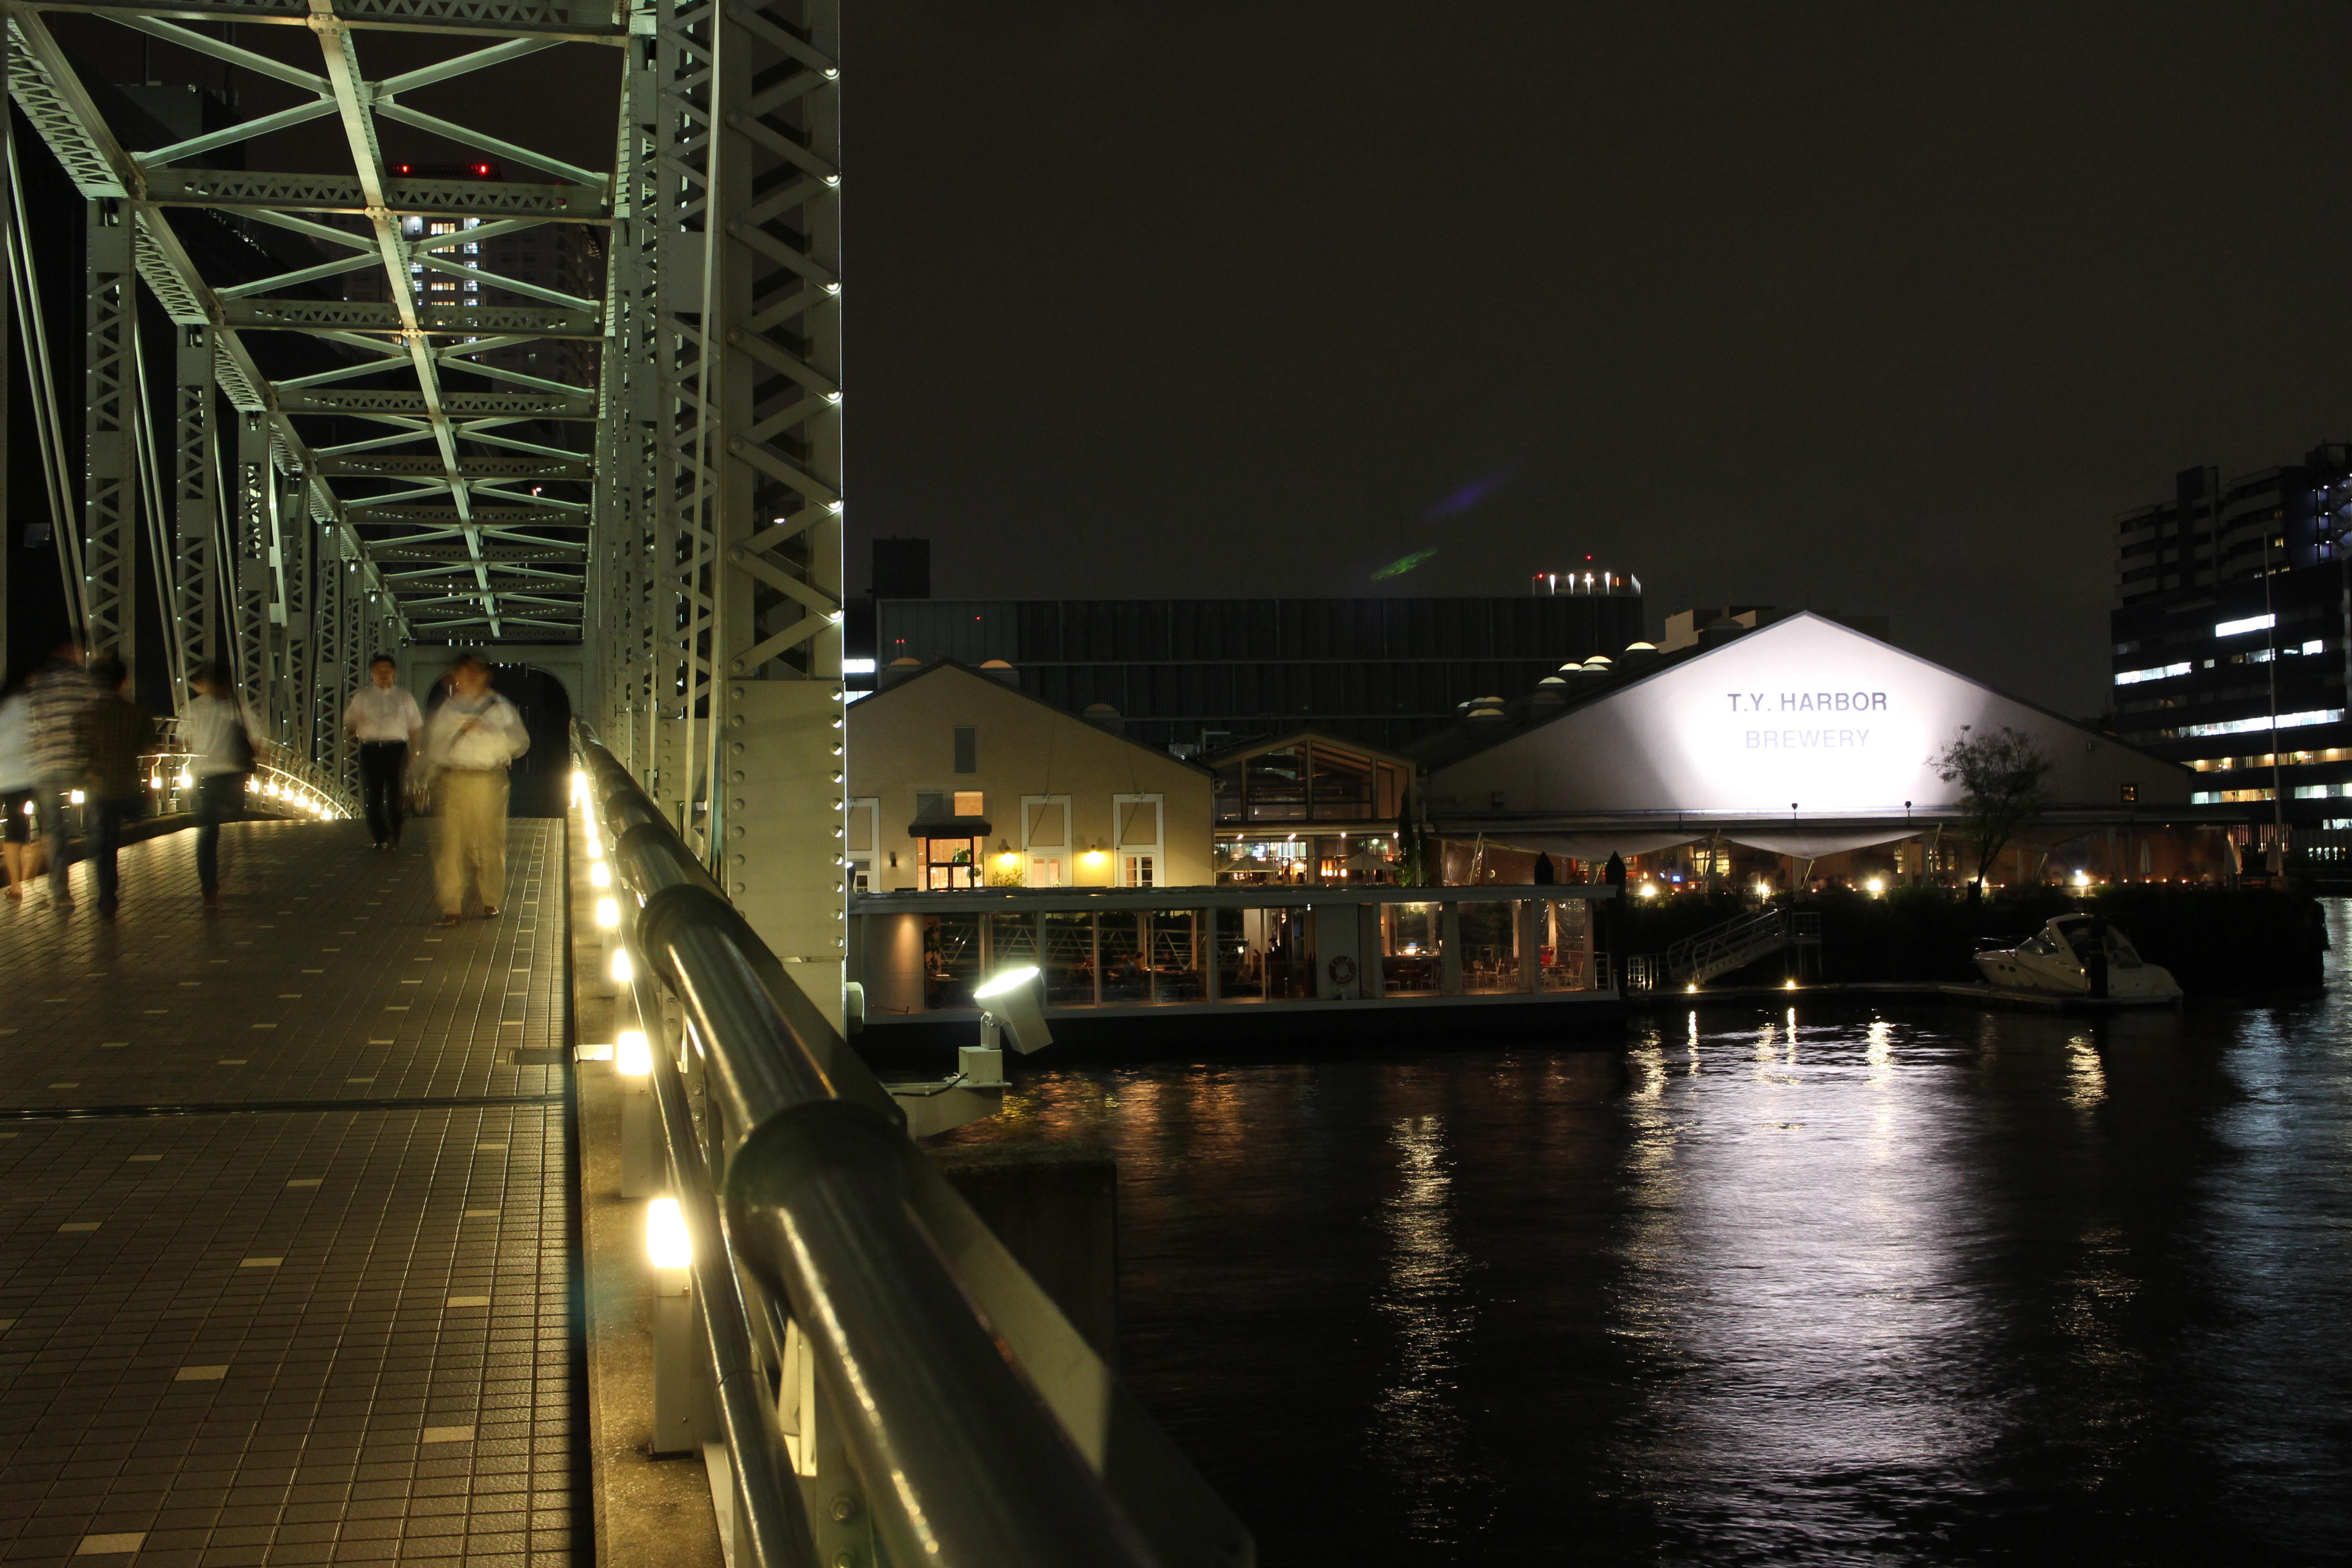 <b>EOS M / EF-M 18-55mm F3.5-5.6 IS STM / 約6.0MB / 5,184×3,456 / 1/1.2秒 / F8 / -0.3EV / ISO800 / 24mm</b>